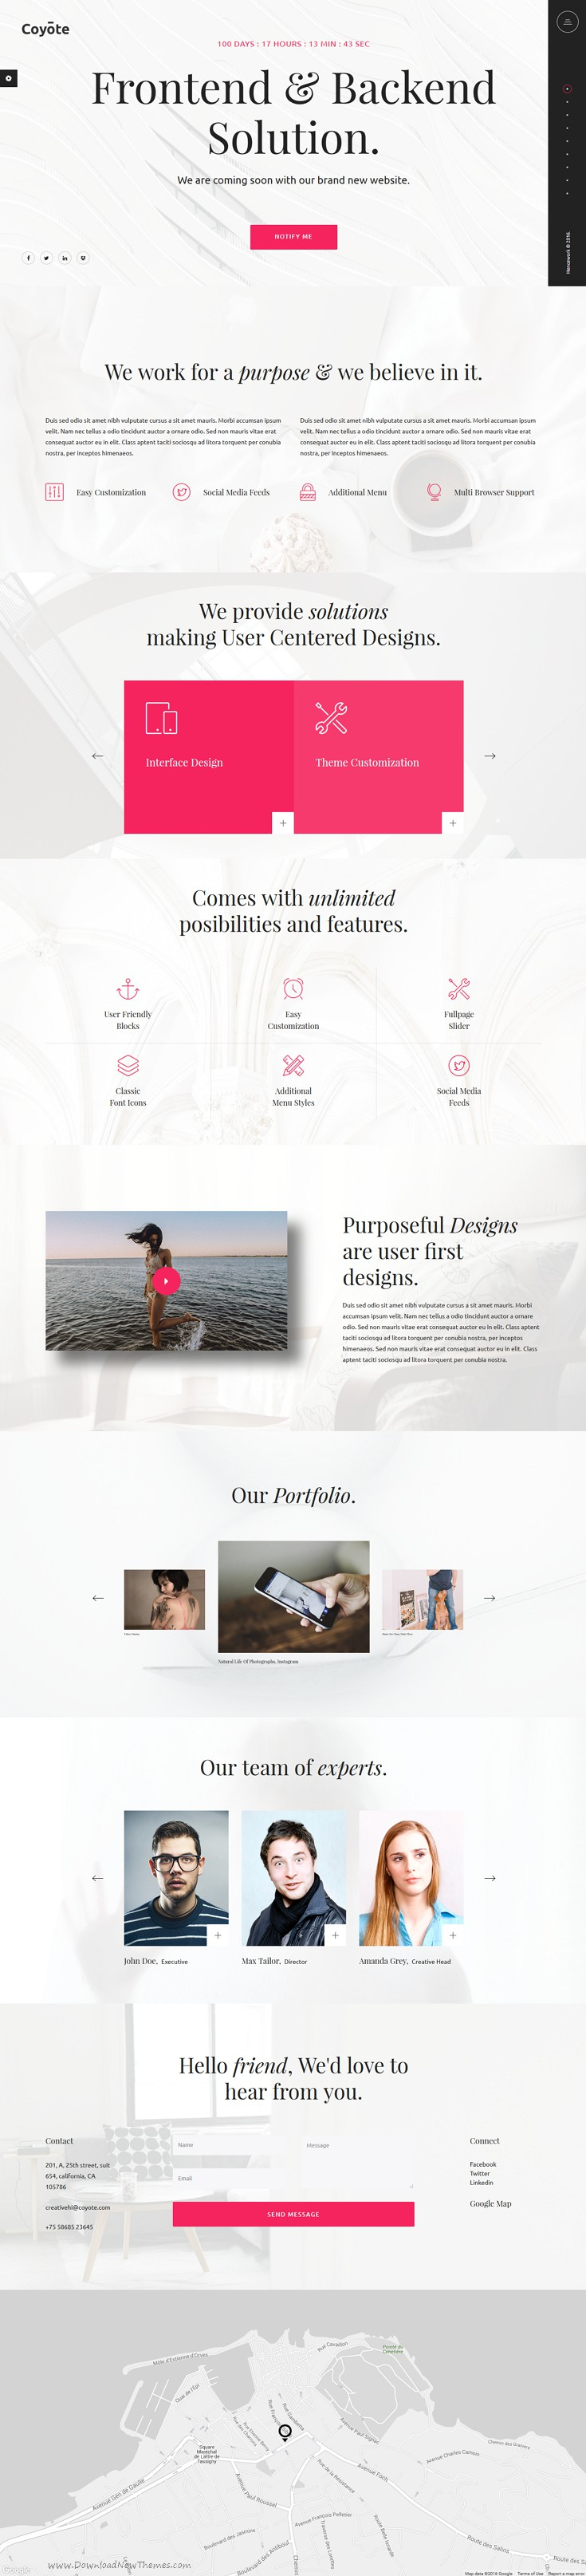 Coyote is 18 in 1 modern and creative responsive AngularJS ...